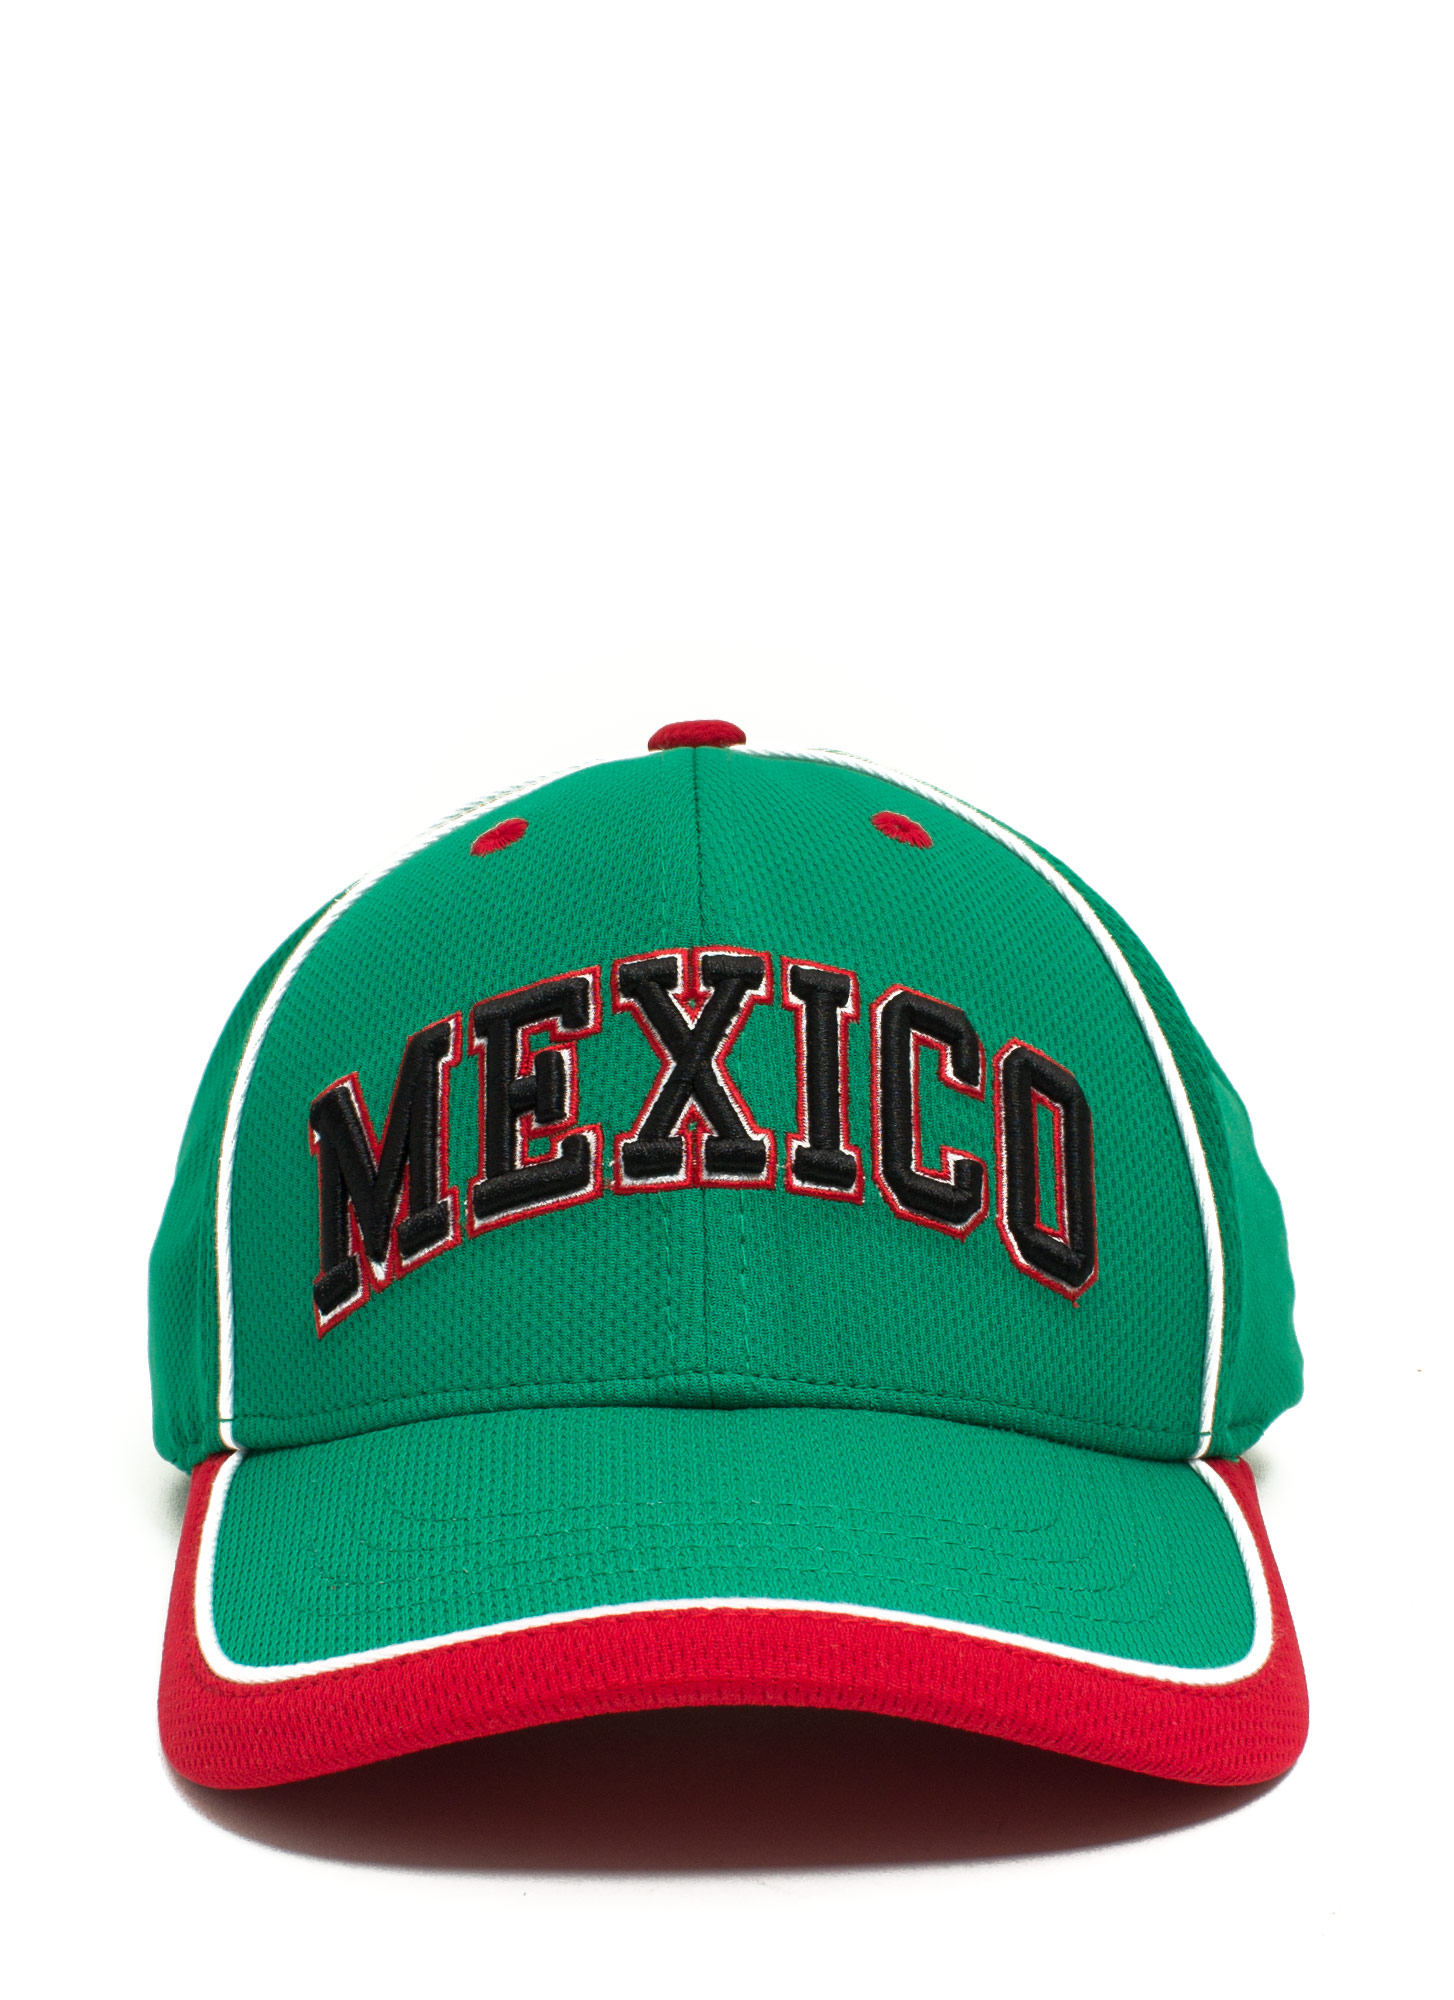 International Country Snapback Hat MEXICO